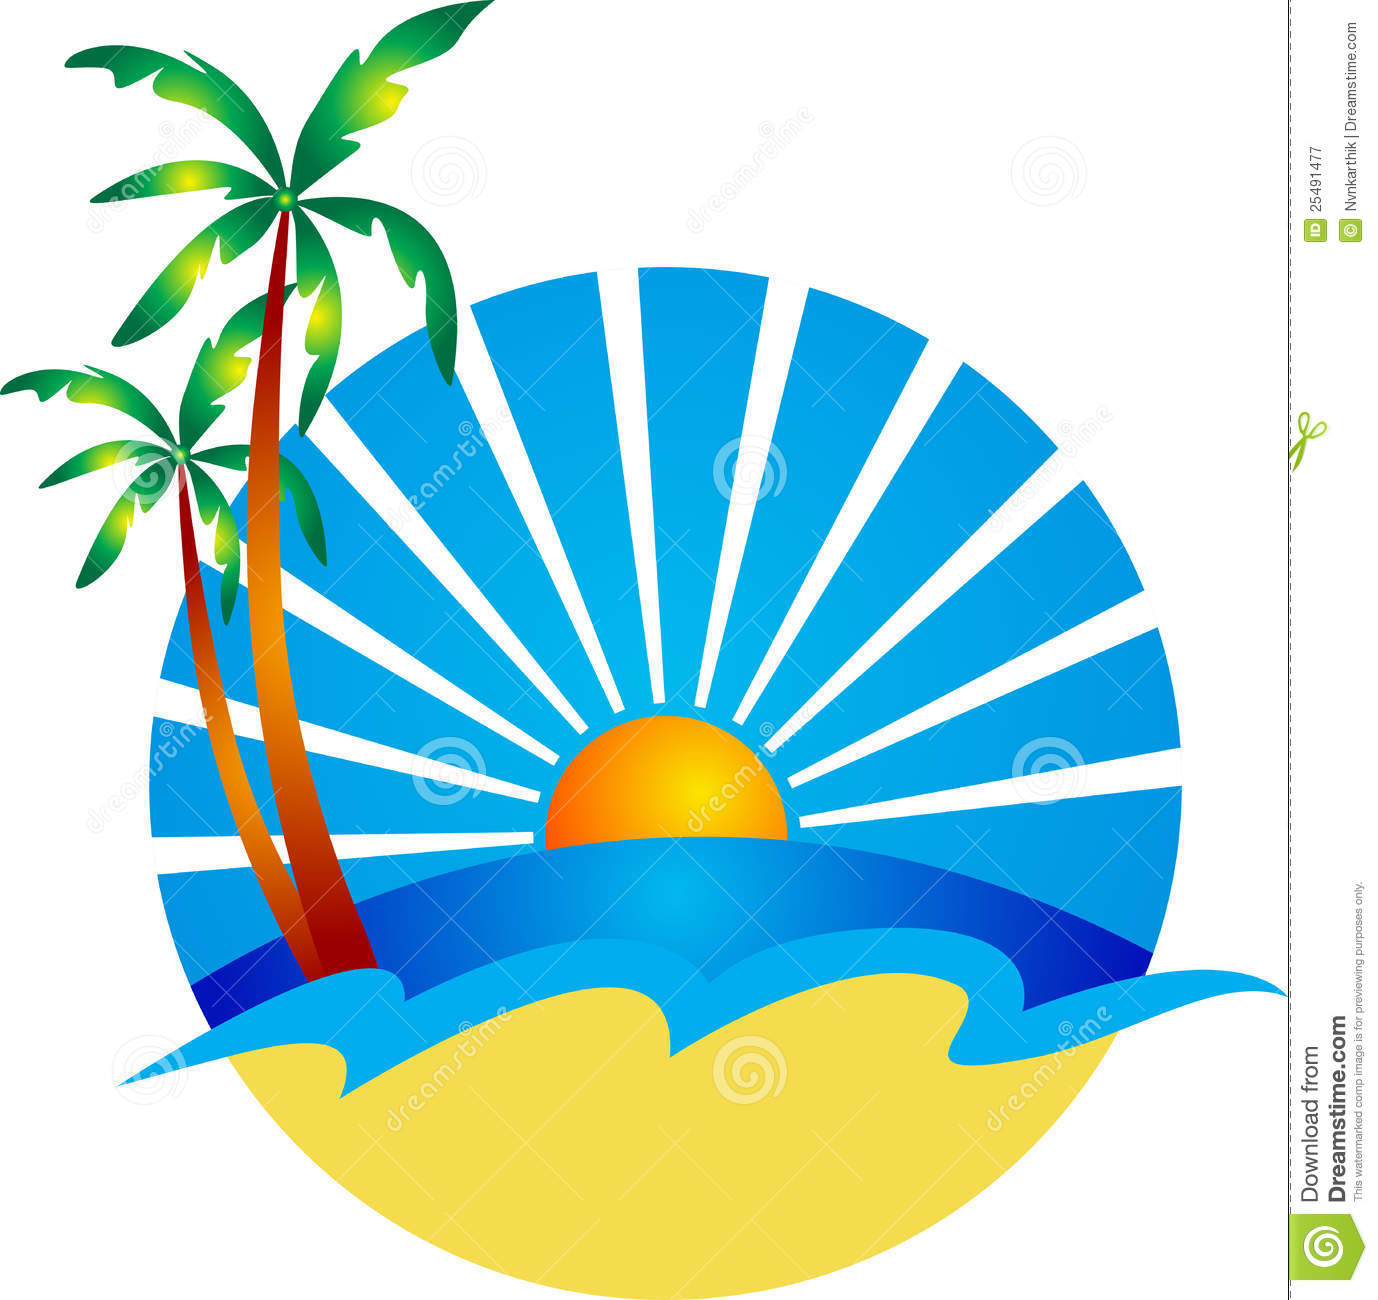 Beach logo stock vector. Illustration of alone, agency - 25491477